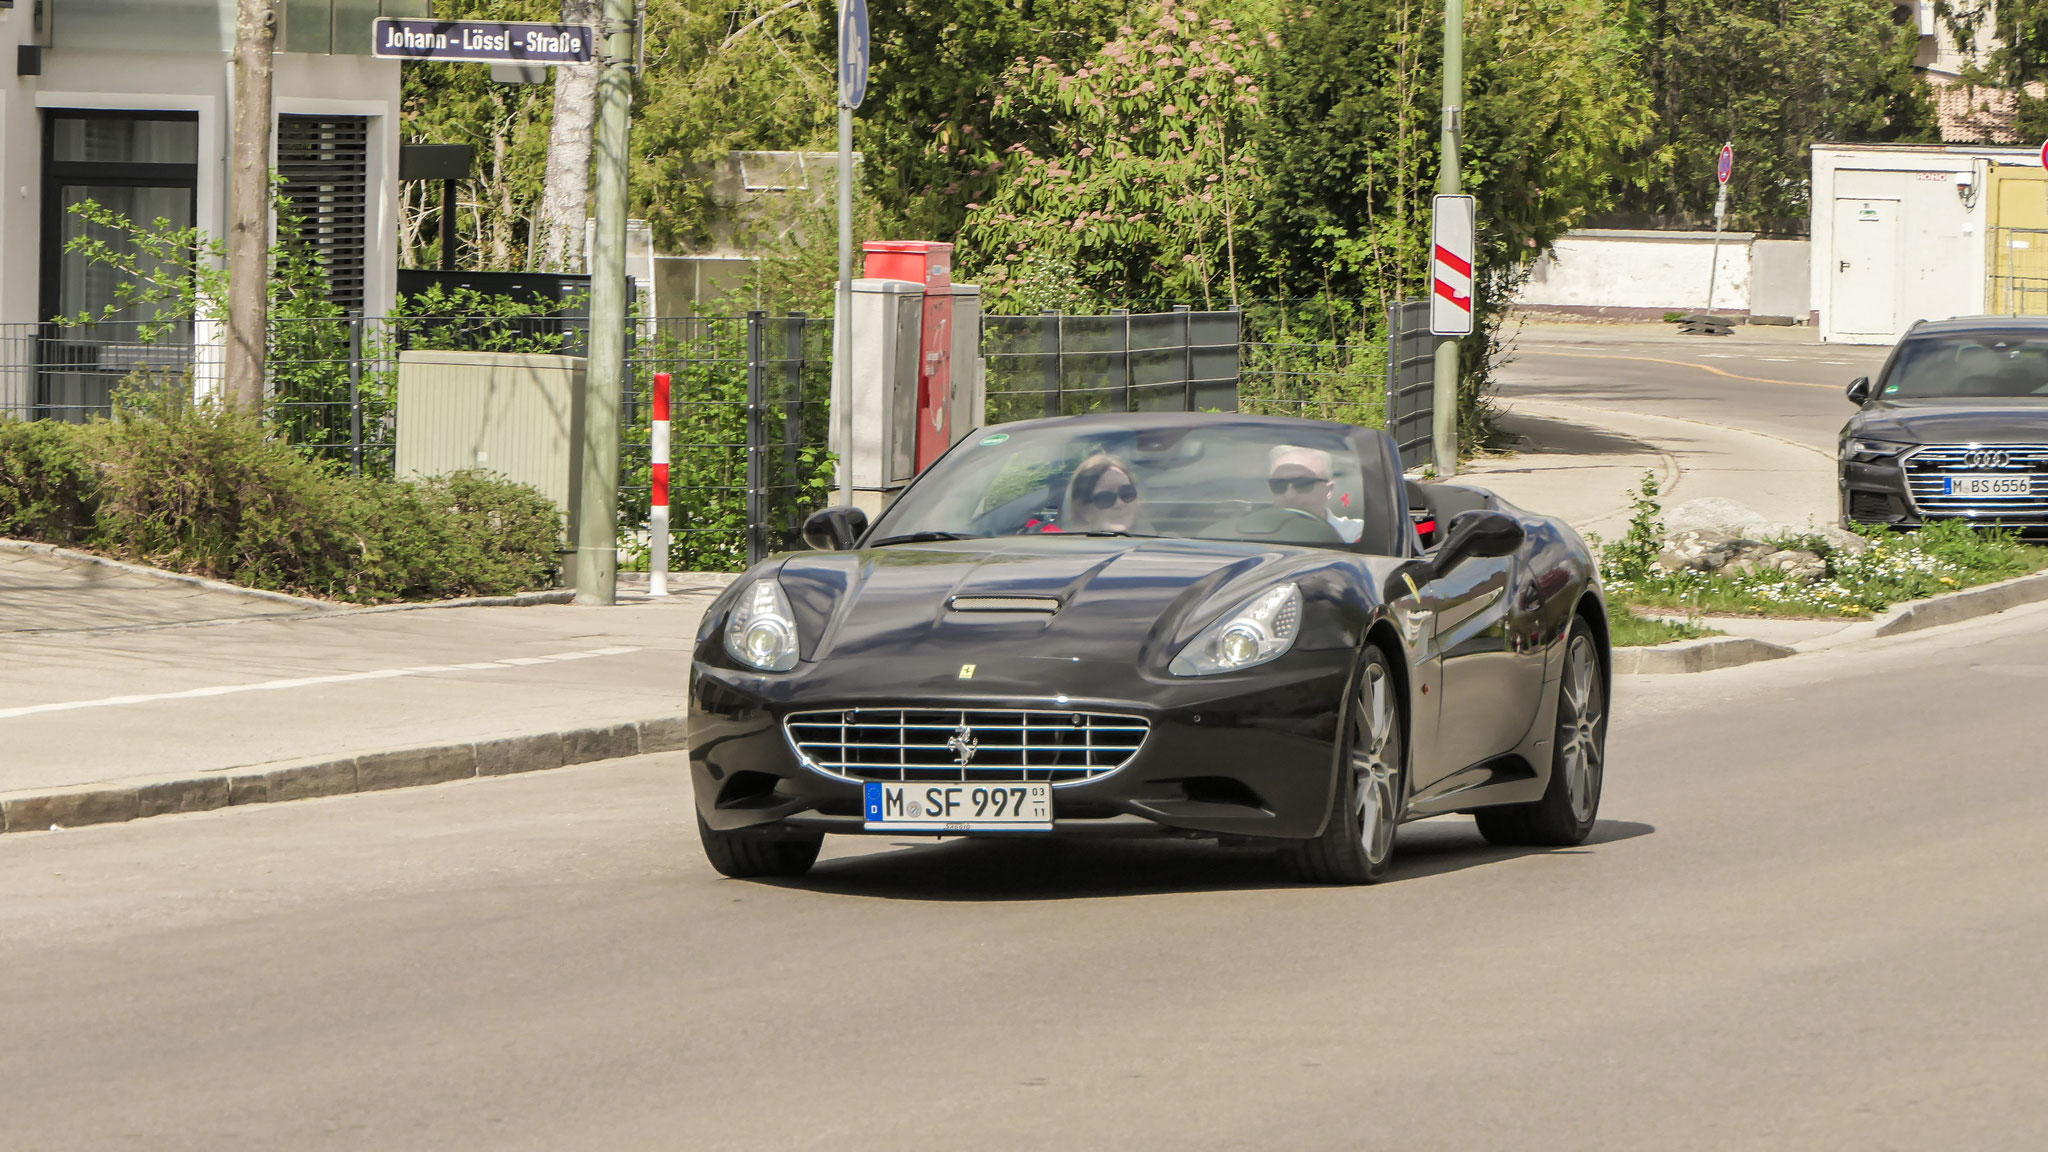 Ferrari California - M-SF-997